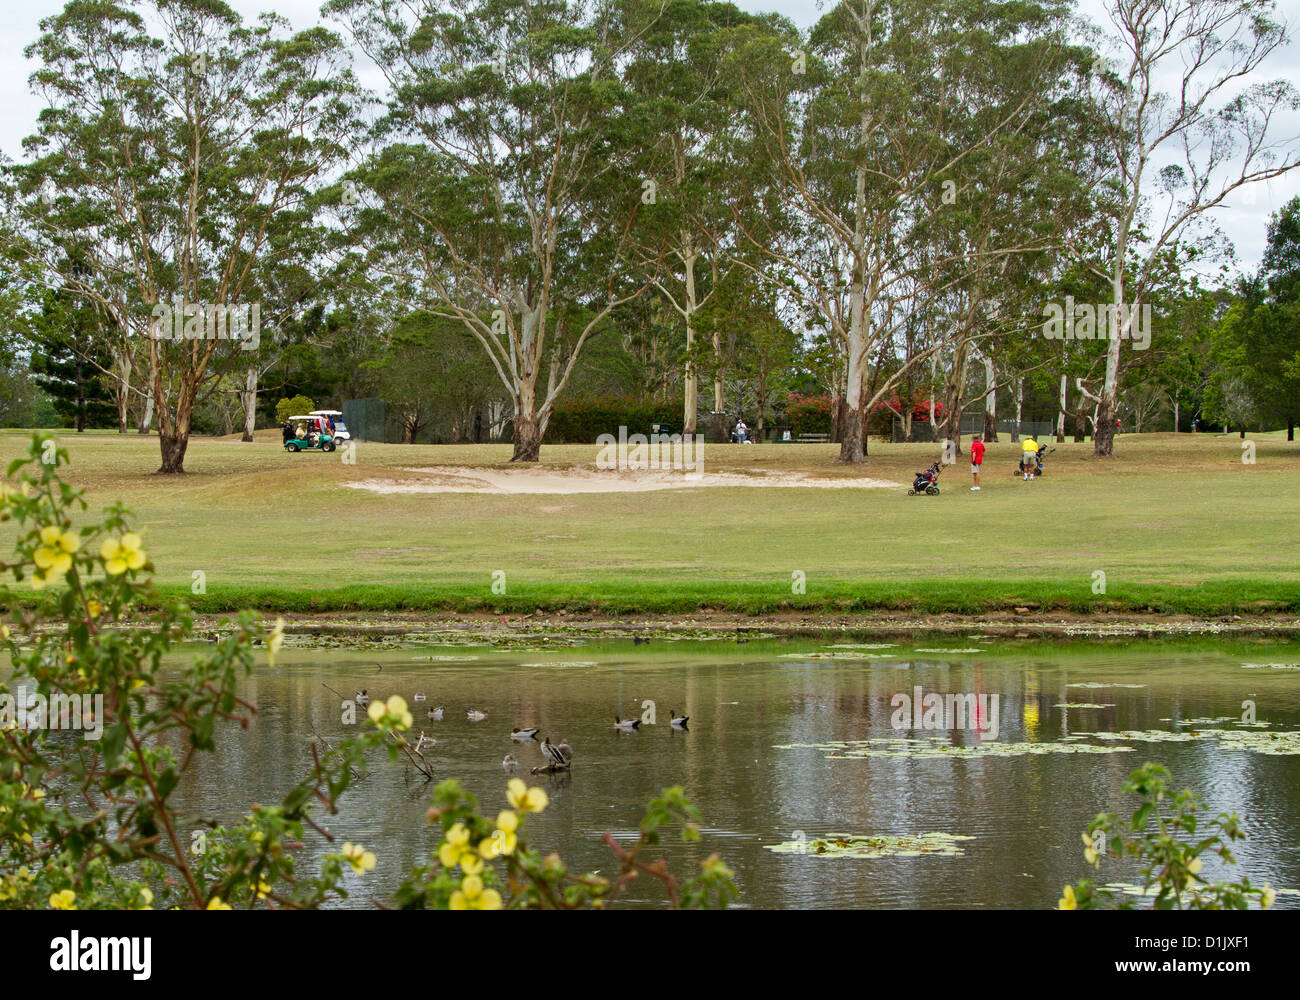 Group of men playing golf on picturesque golf course beside lake at Maryborough Australia - Stock Image